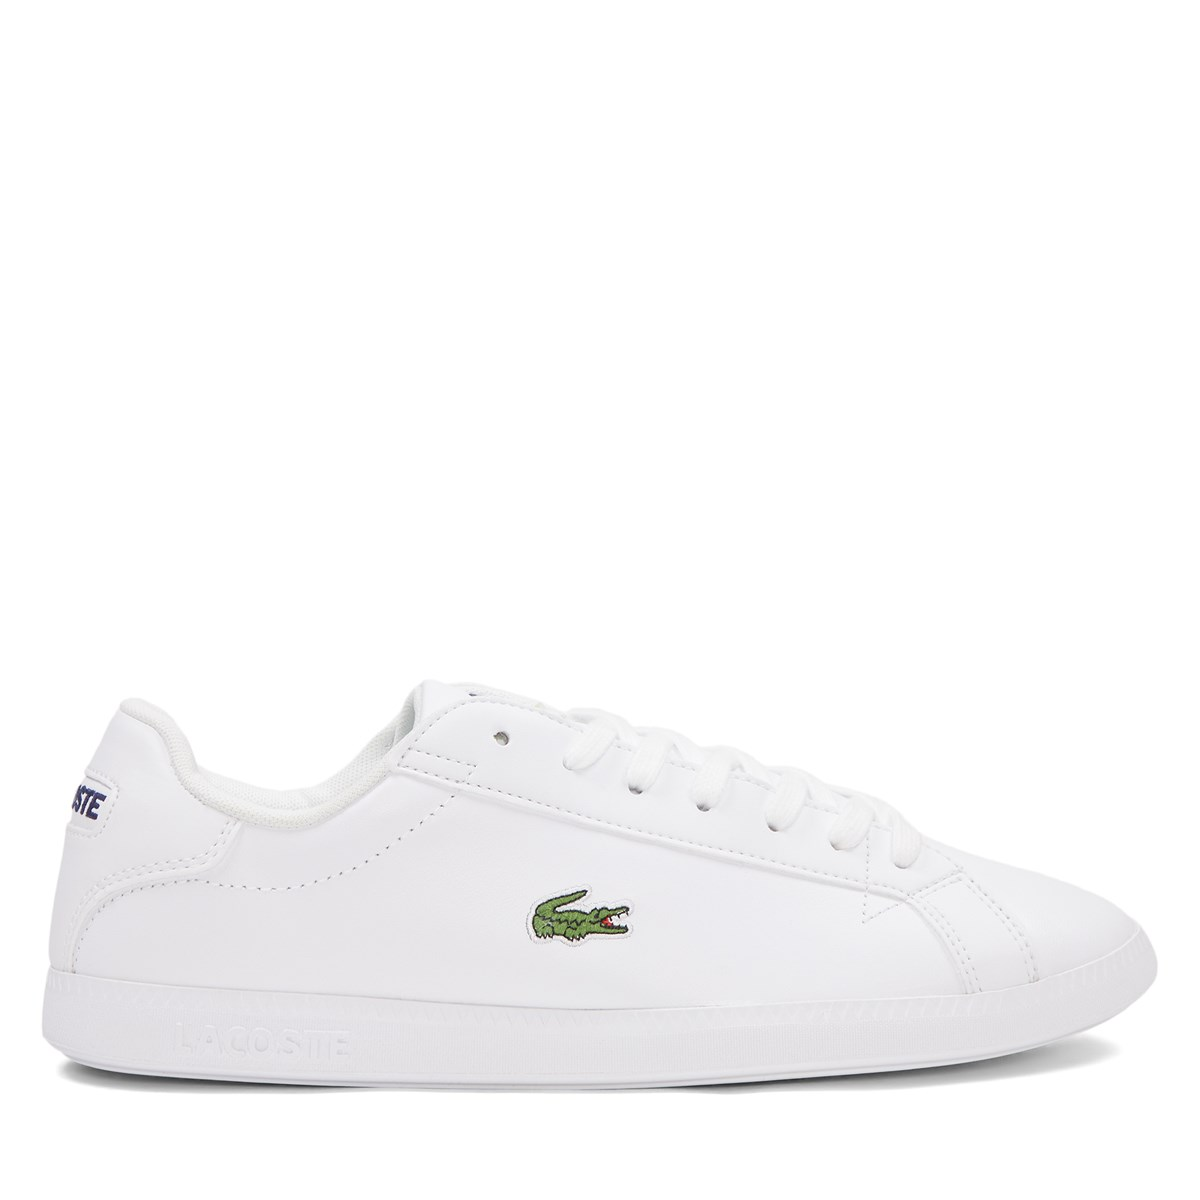 Men's Graduate Sneakers in White